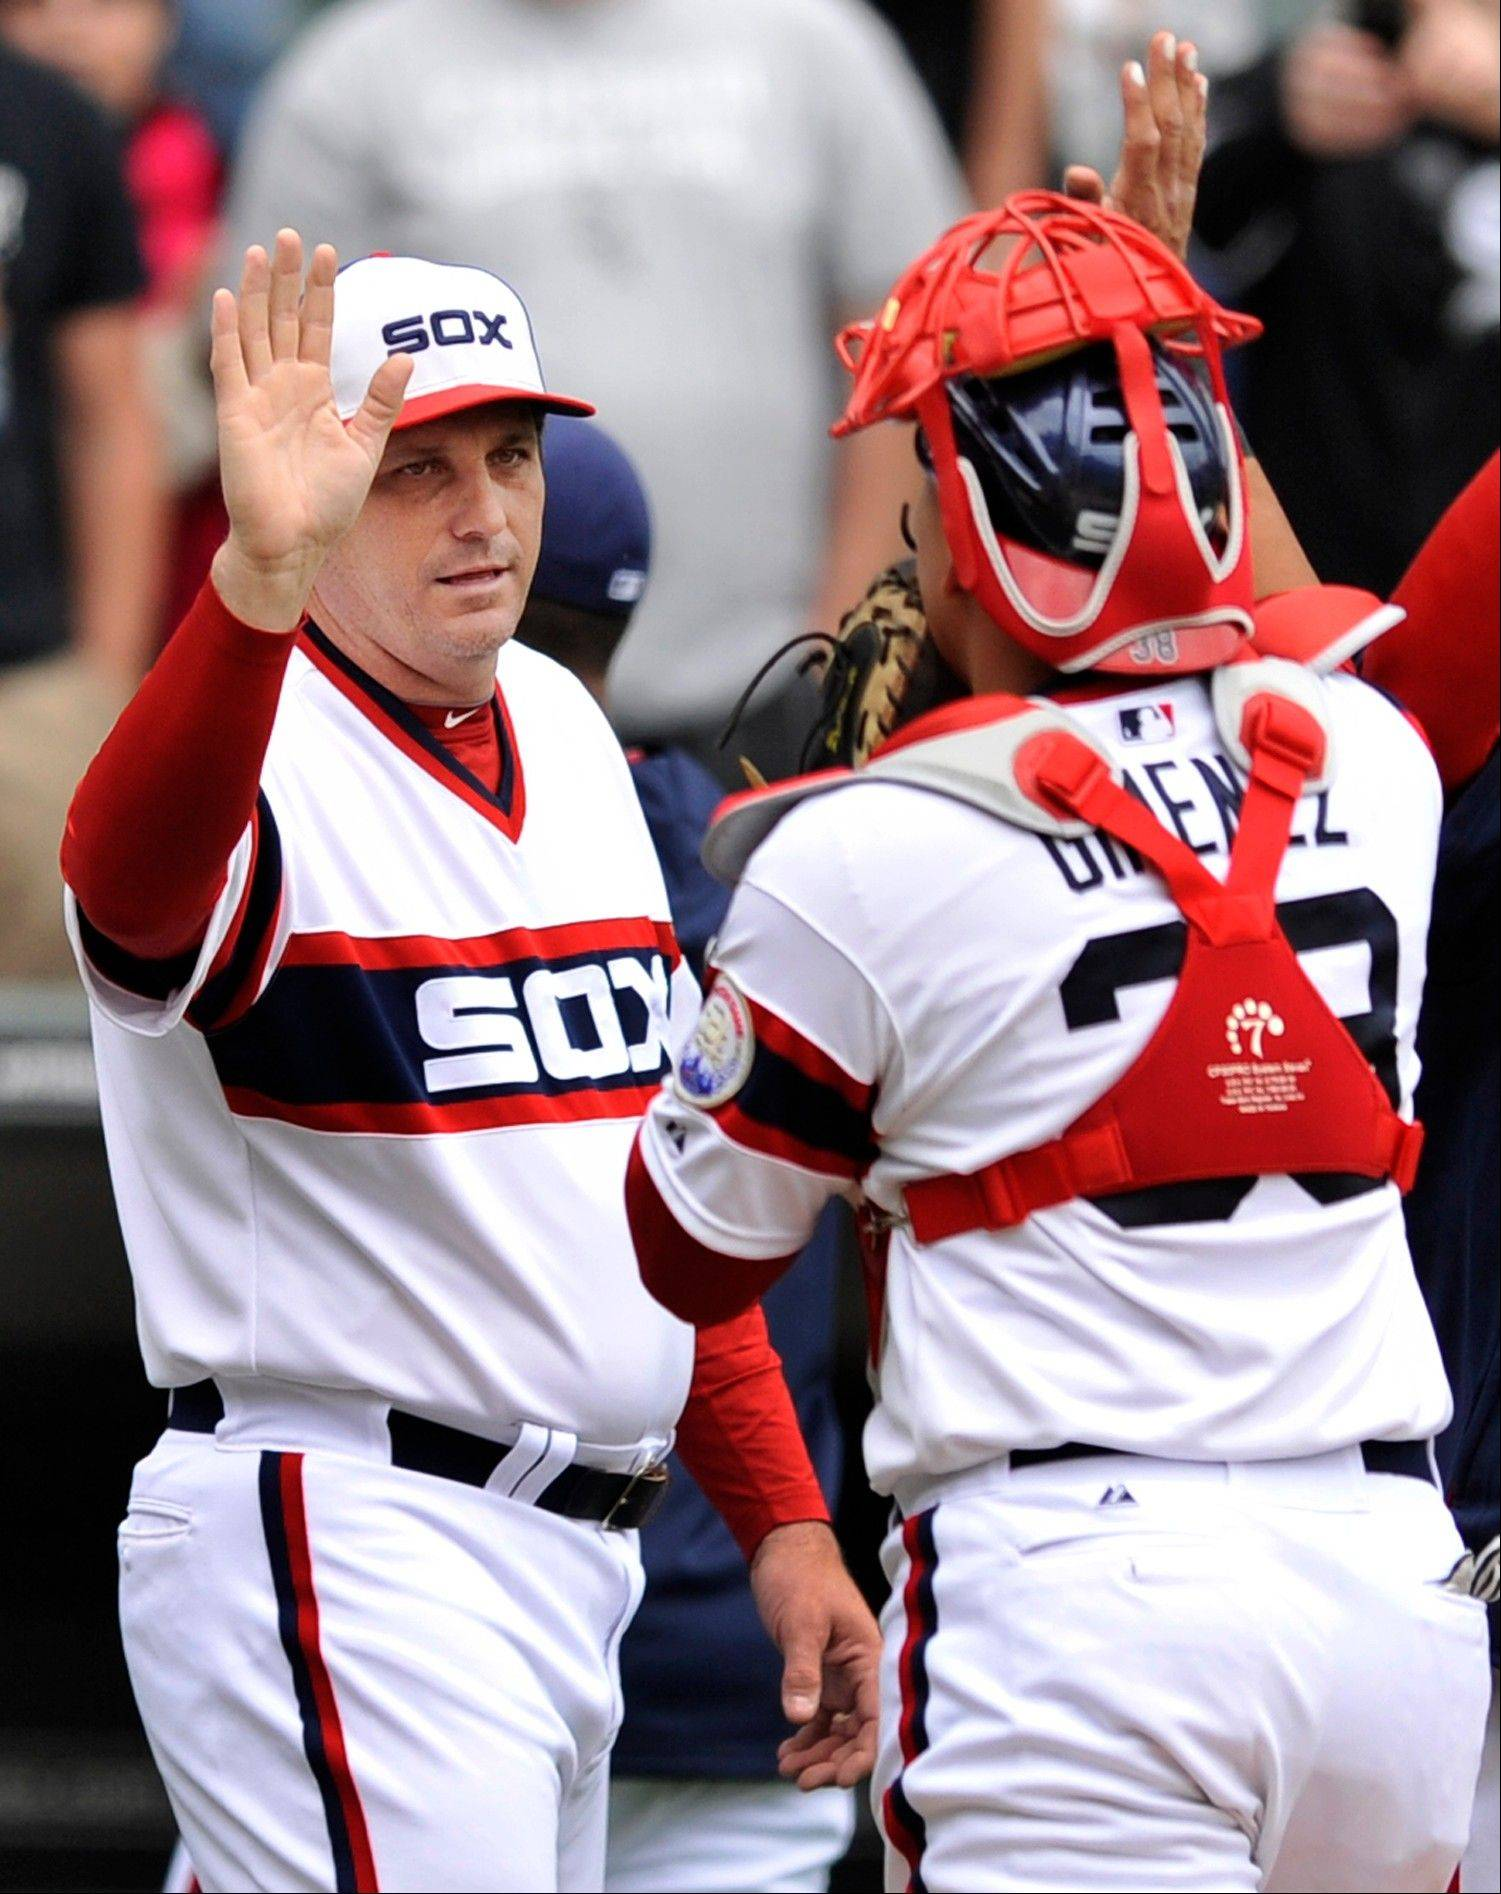 White Sox manager Robin Ventura celebrates with catcher Hector Gimenez after Sunday's 5-3 victory over the Miami Marlins at U.S. Cellular Field.